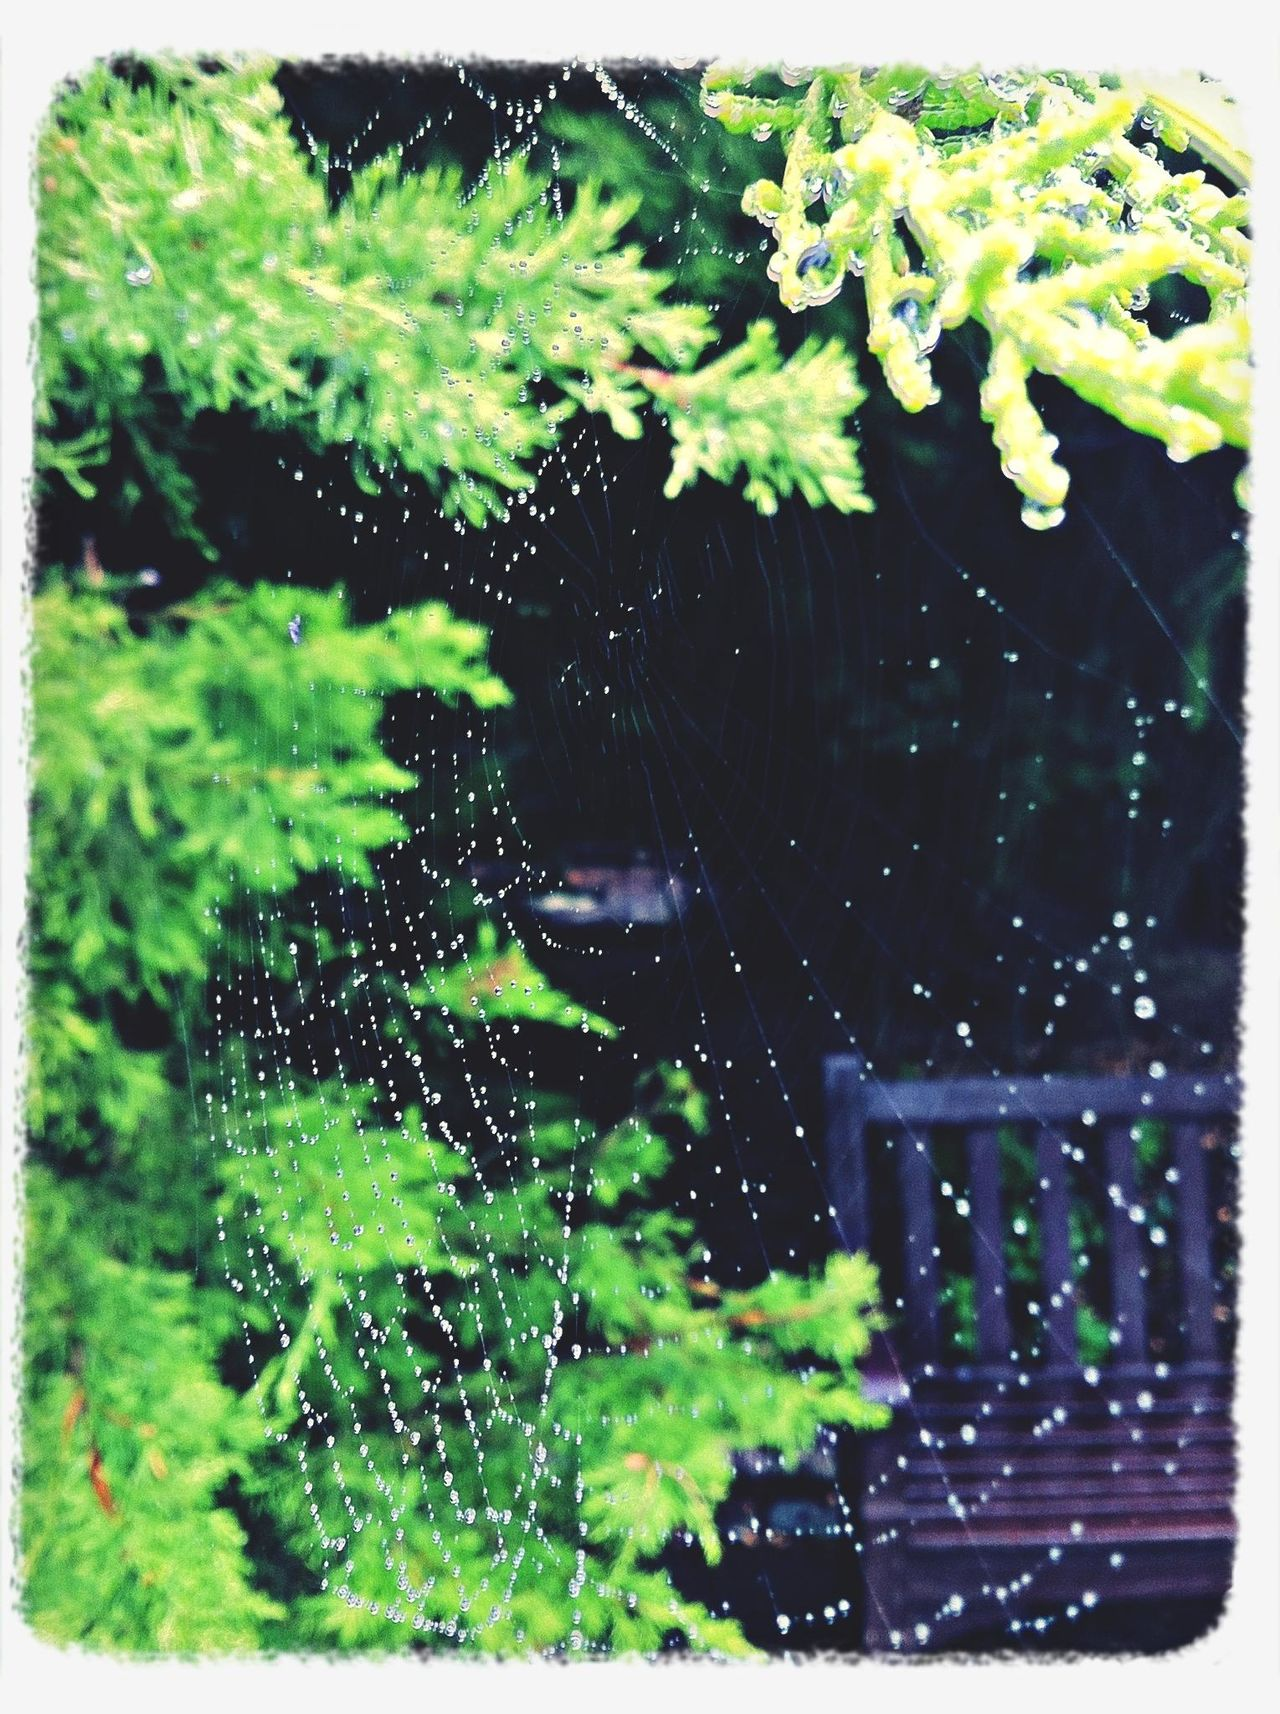 Spiderweb Spider Web Rainy Days Raindrops Cold Temperature Beautiful Nature